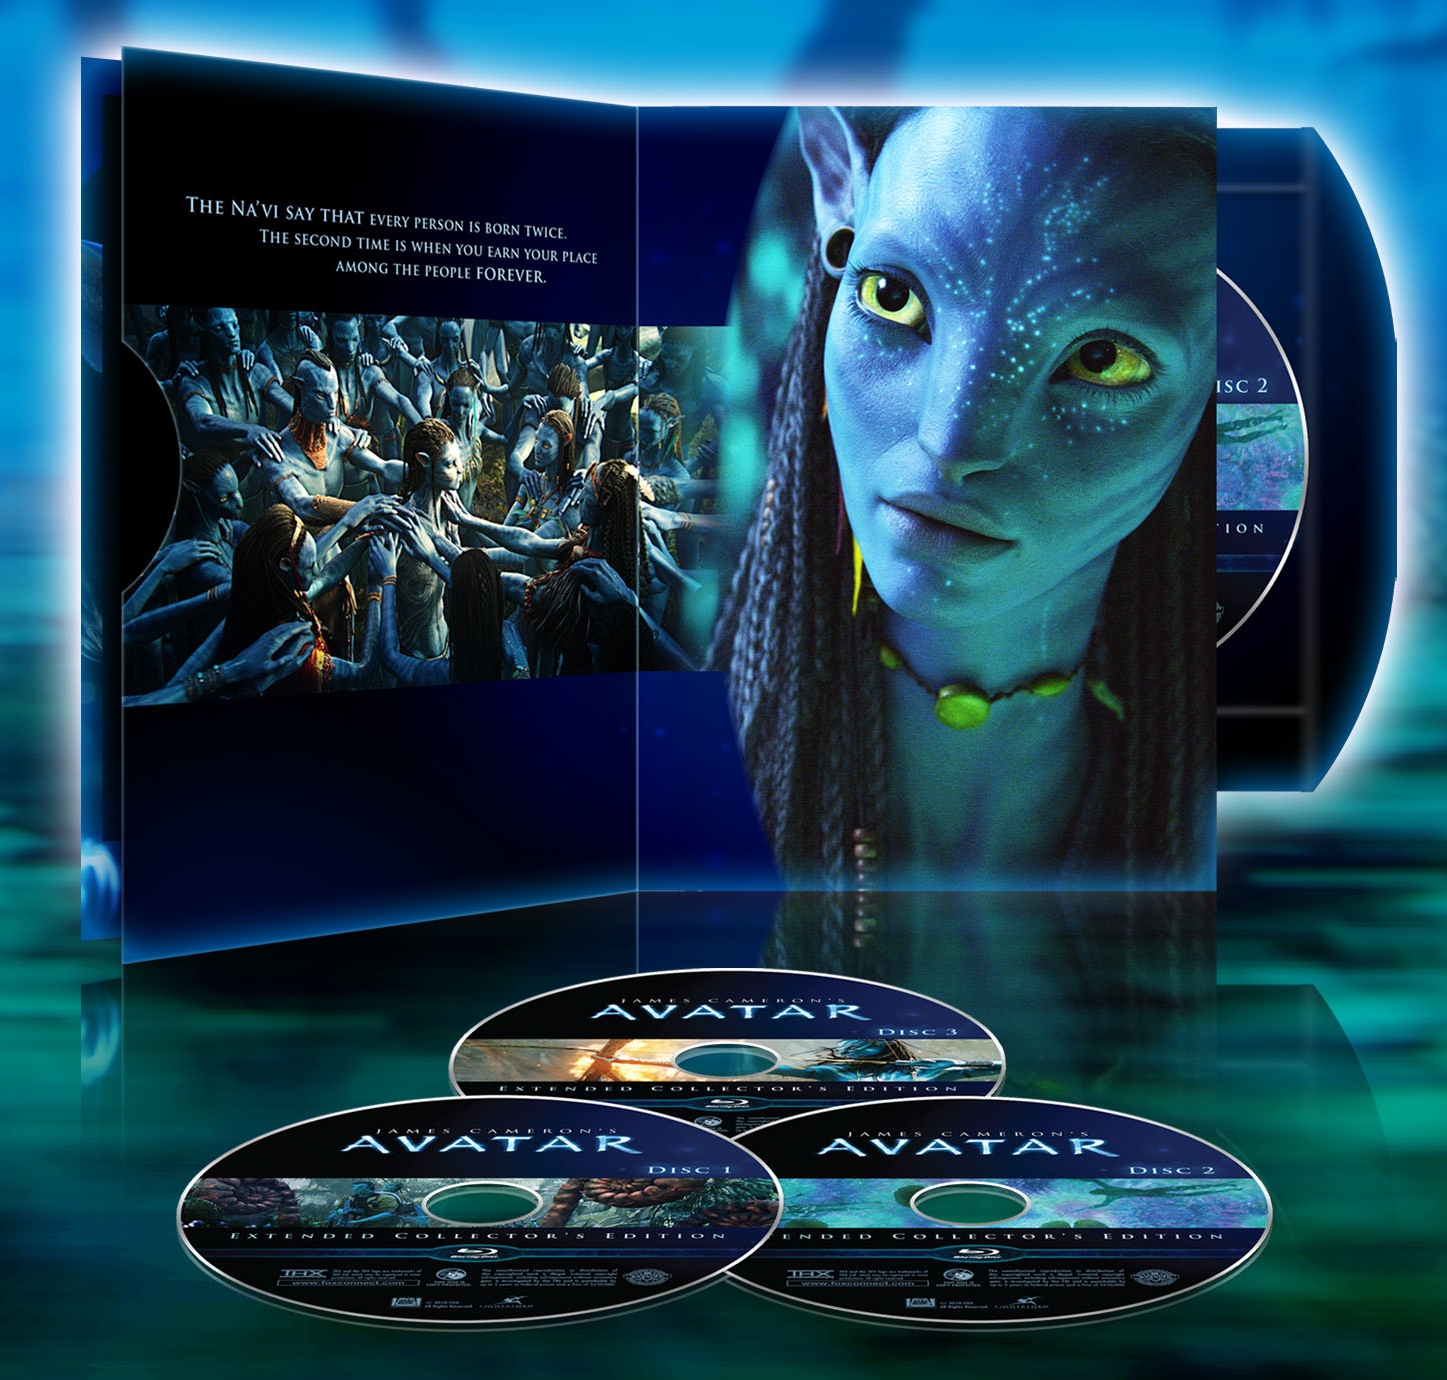 Avatar 2 Hd Full Movie: Trololo Blogg: Wallpaper Extended